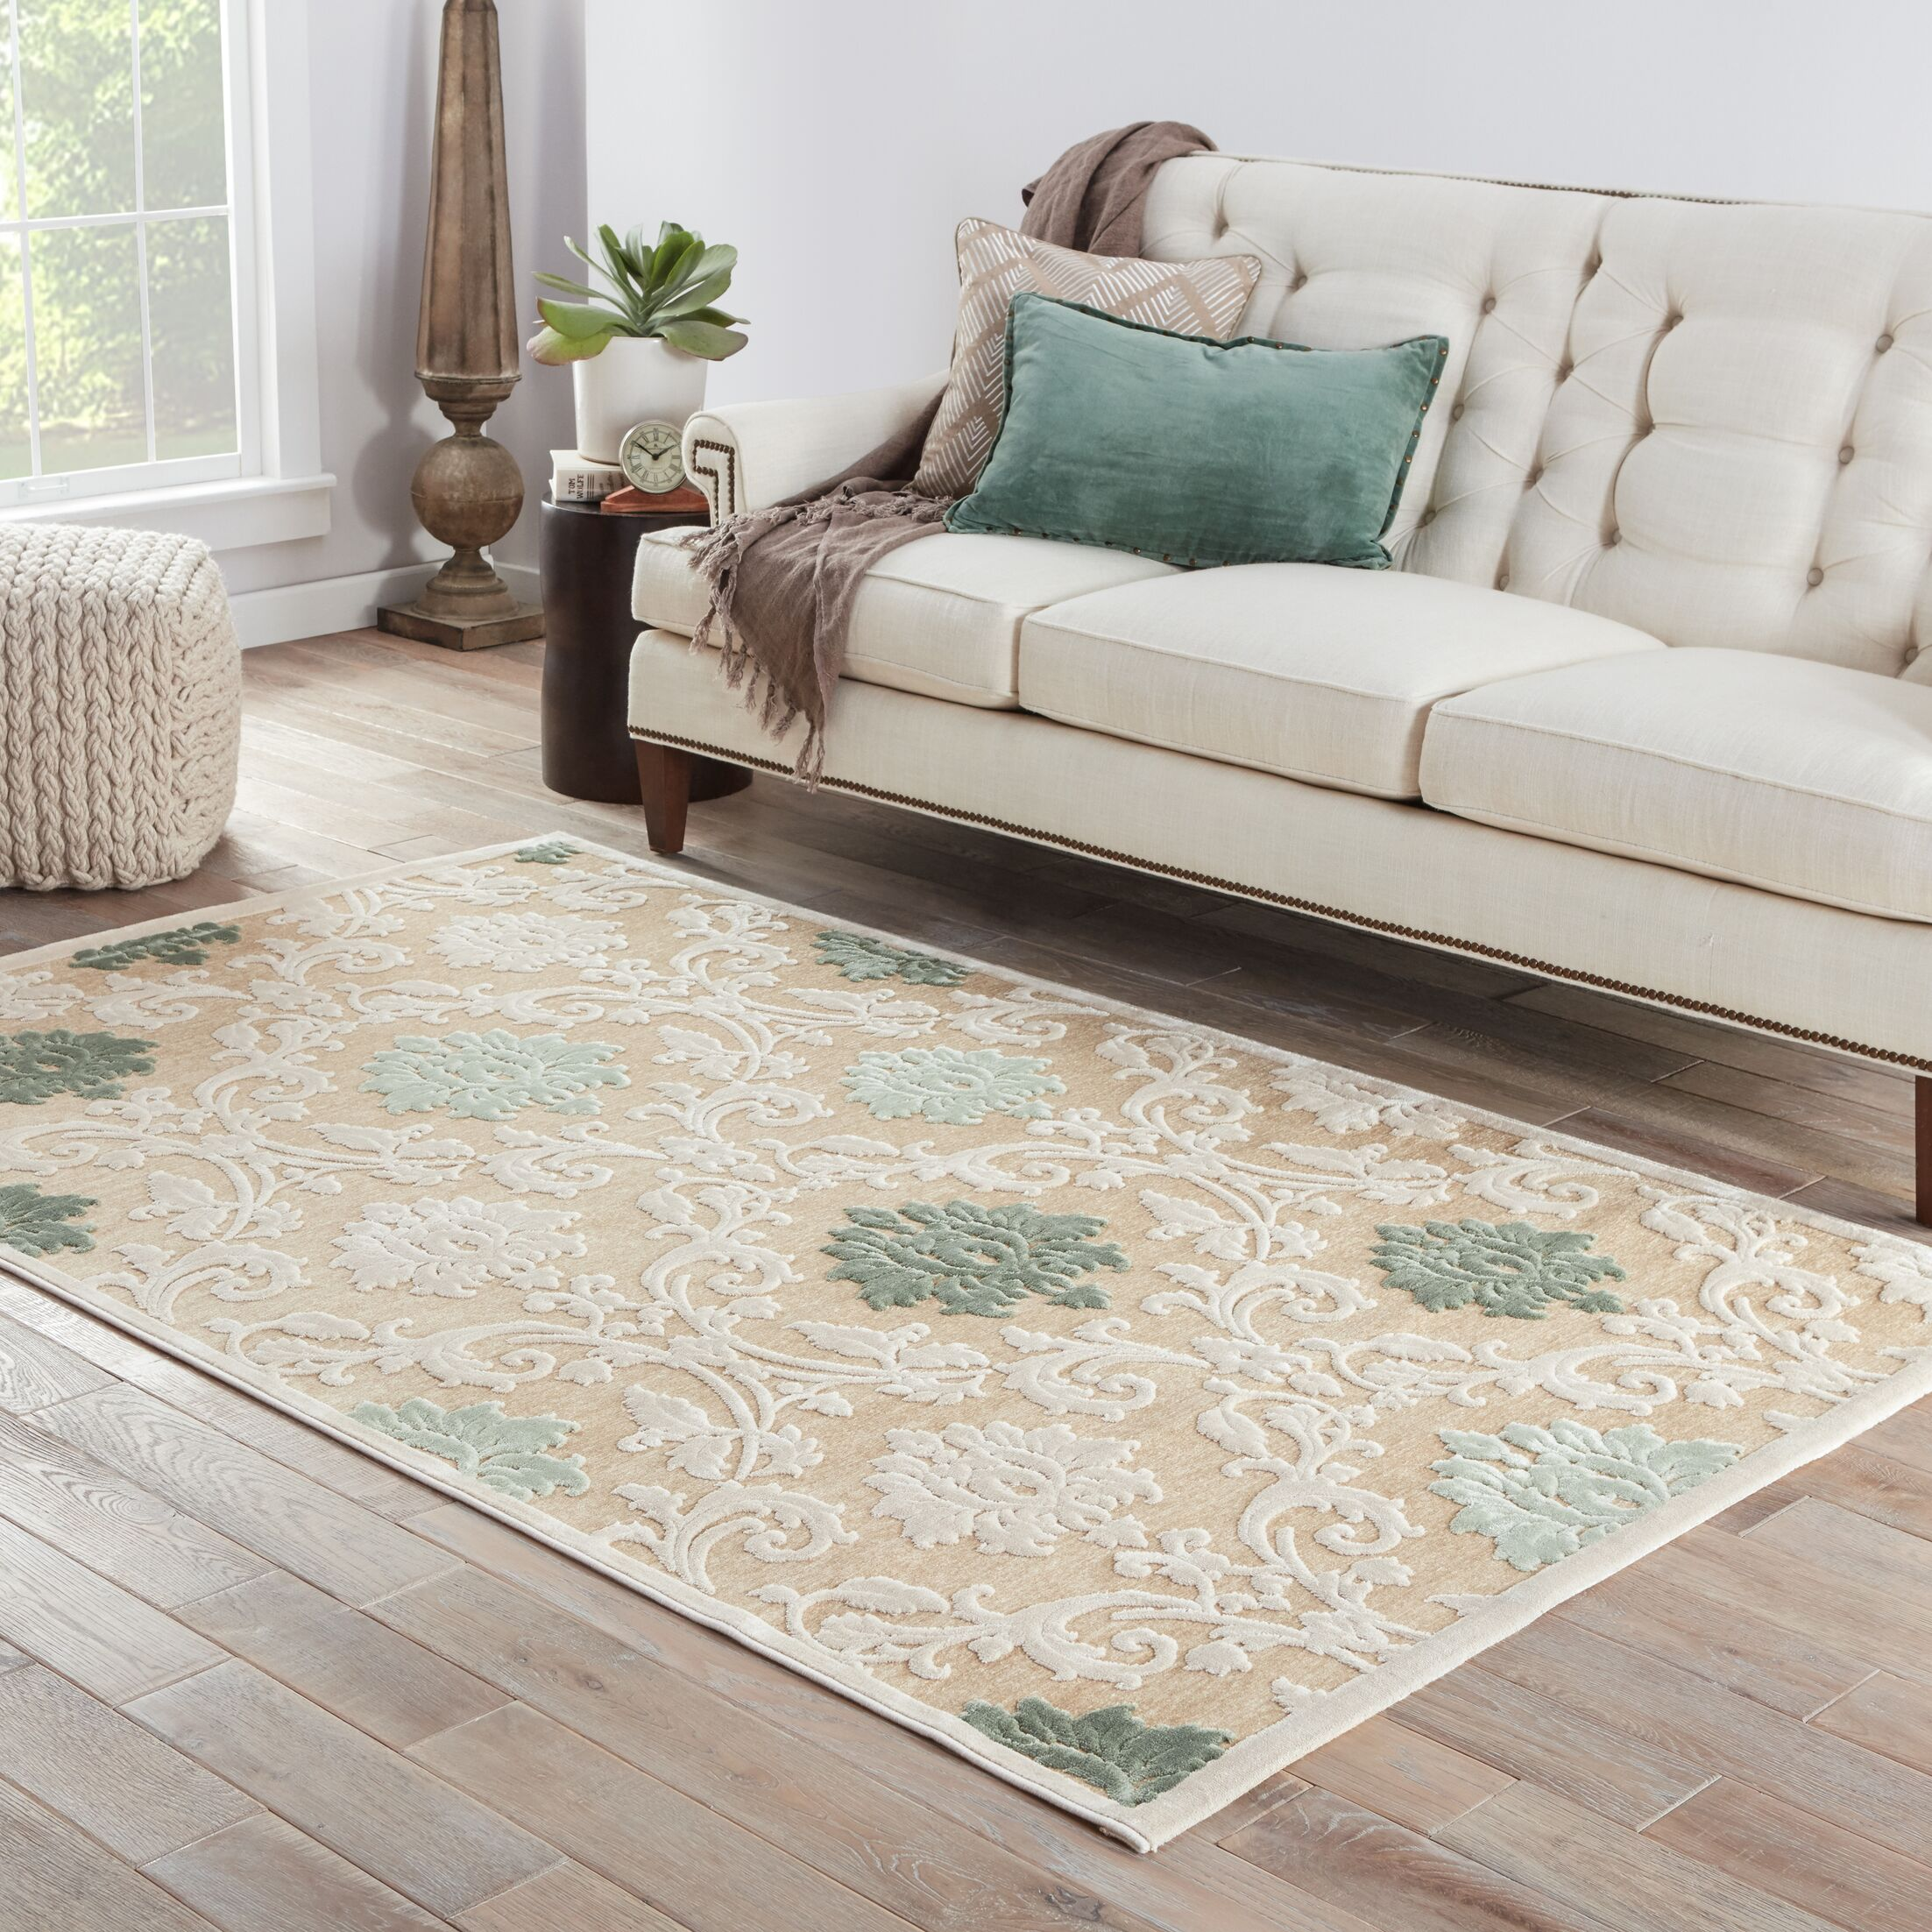 Ada Tufted Chenille Cream/Light Green Area Rug Rug Size: Rectangle 5' x 7'6